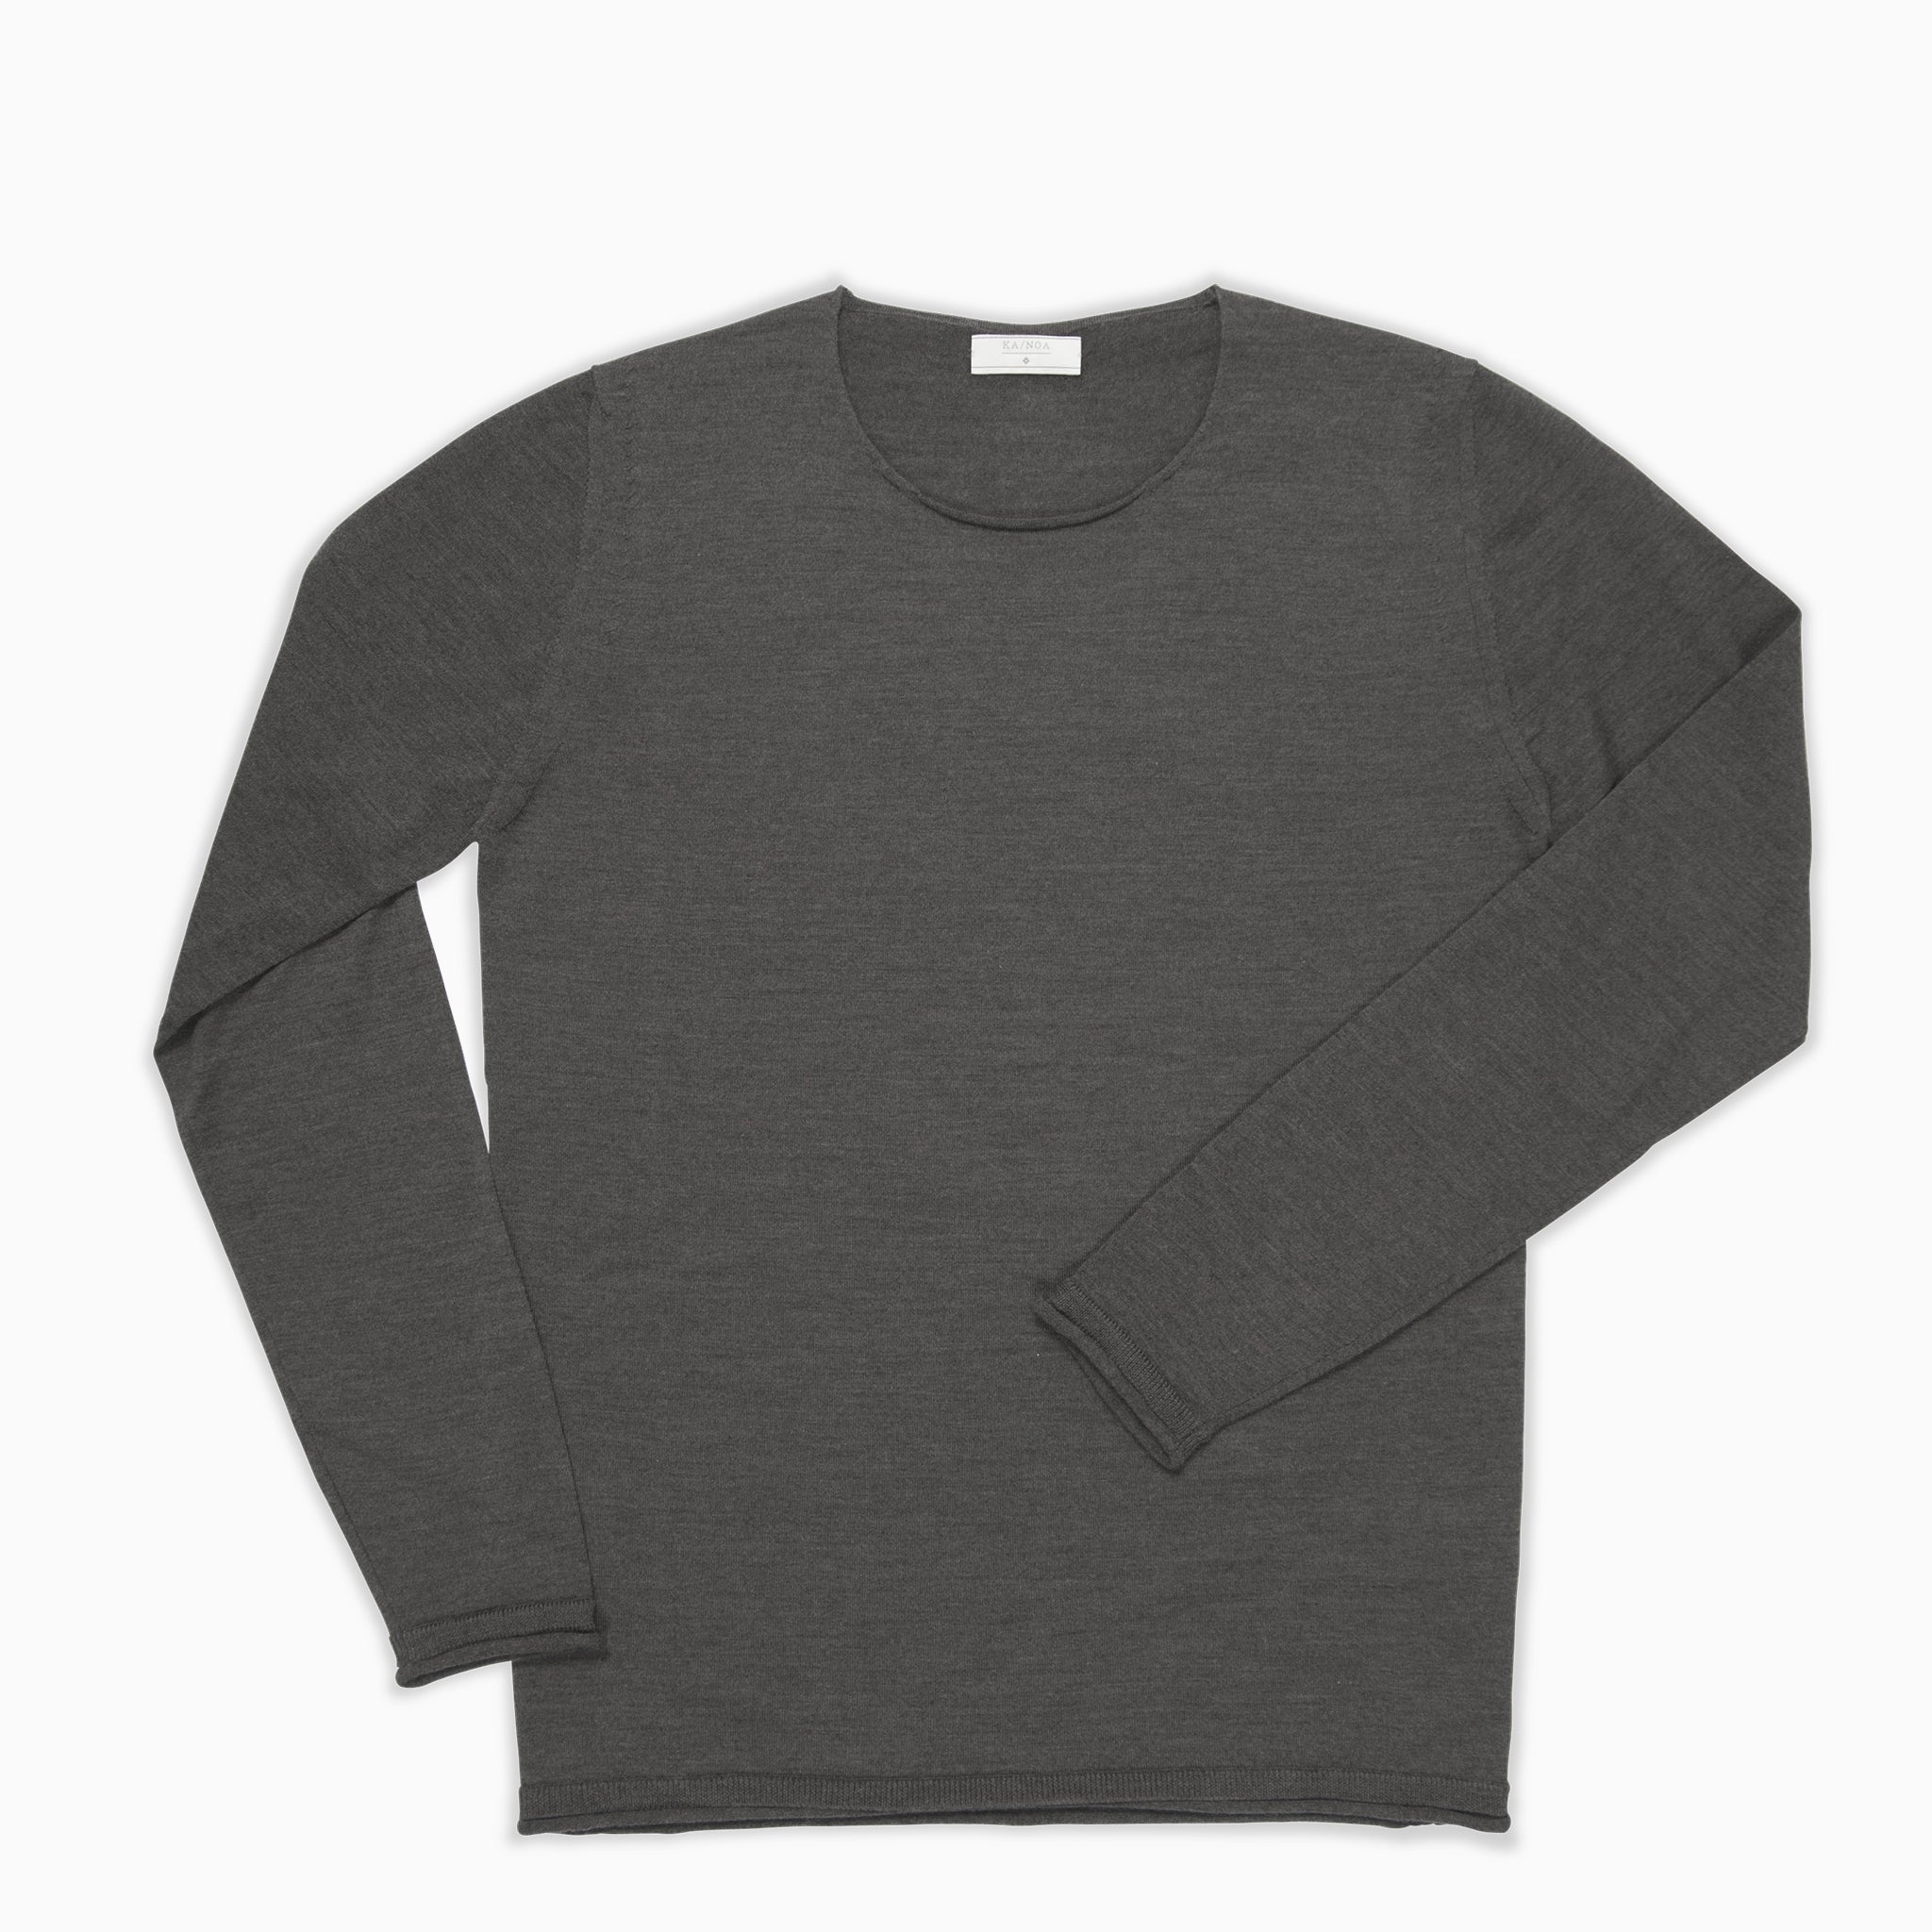 Andreieu crew-neck jumper Superfine Merino Wool (Old Field Melange)